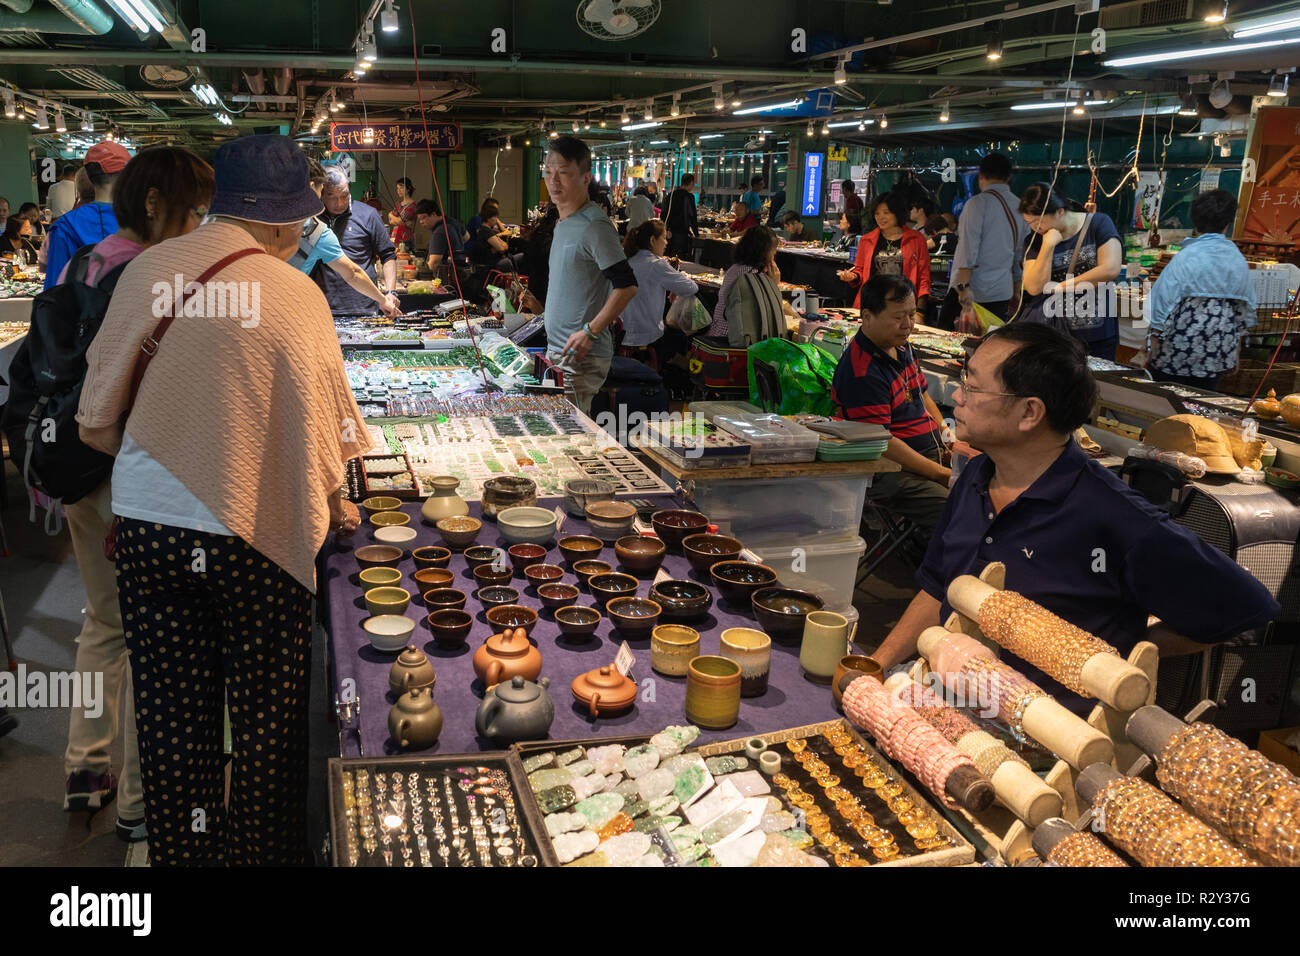 Visitors to the Jianguo Holiday Jade Market in Taipei peruse the goods being sold at the market. - Stock Image